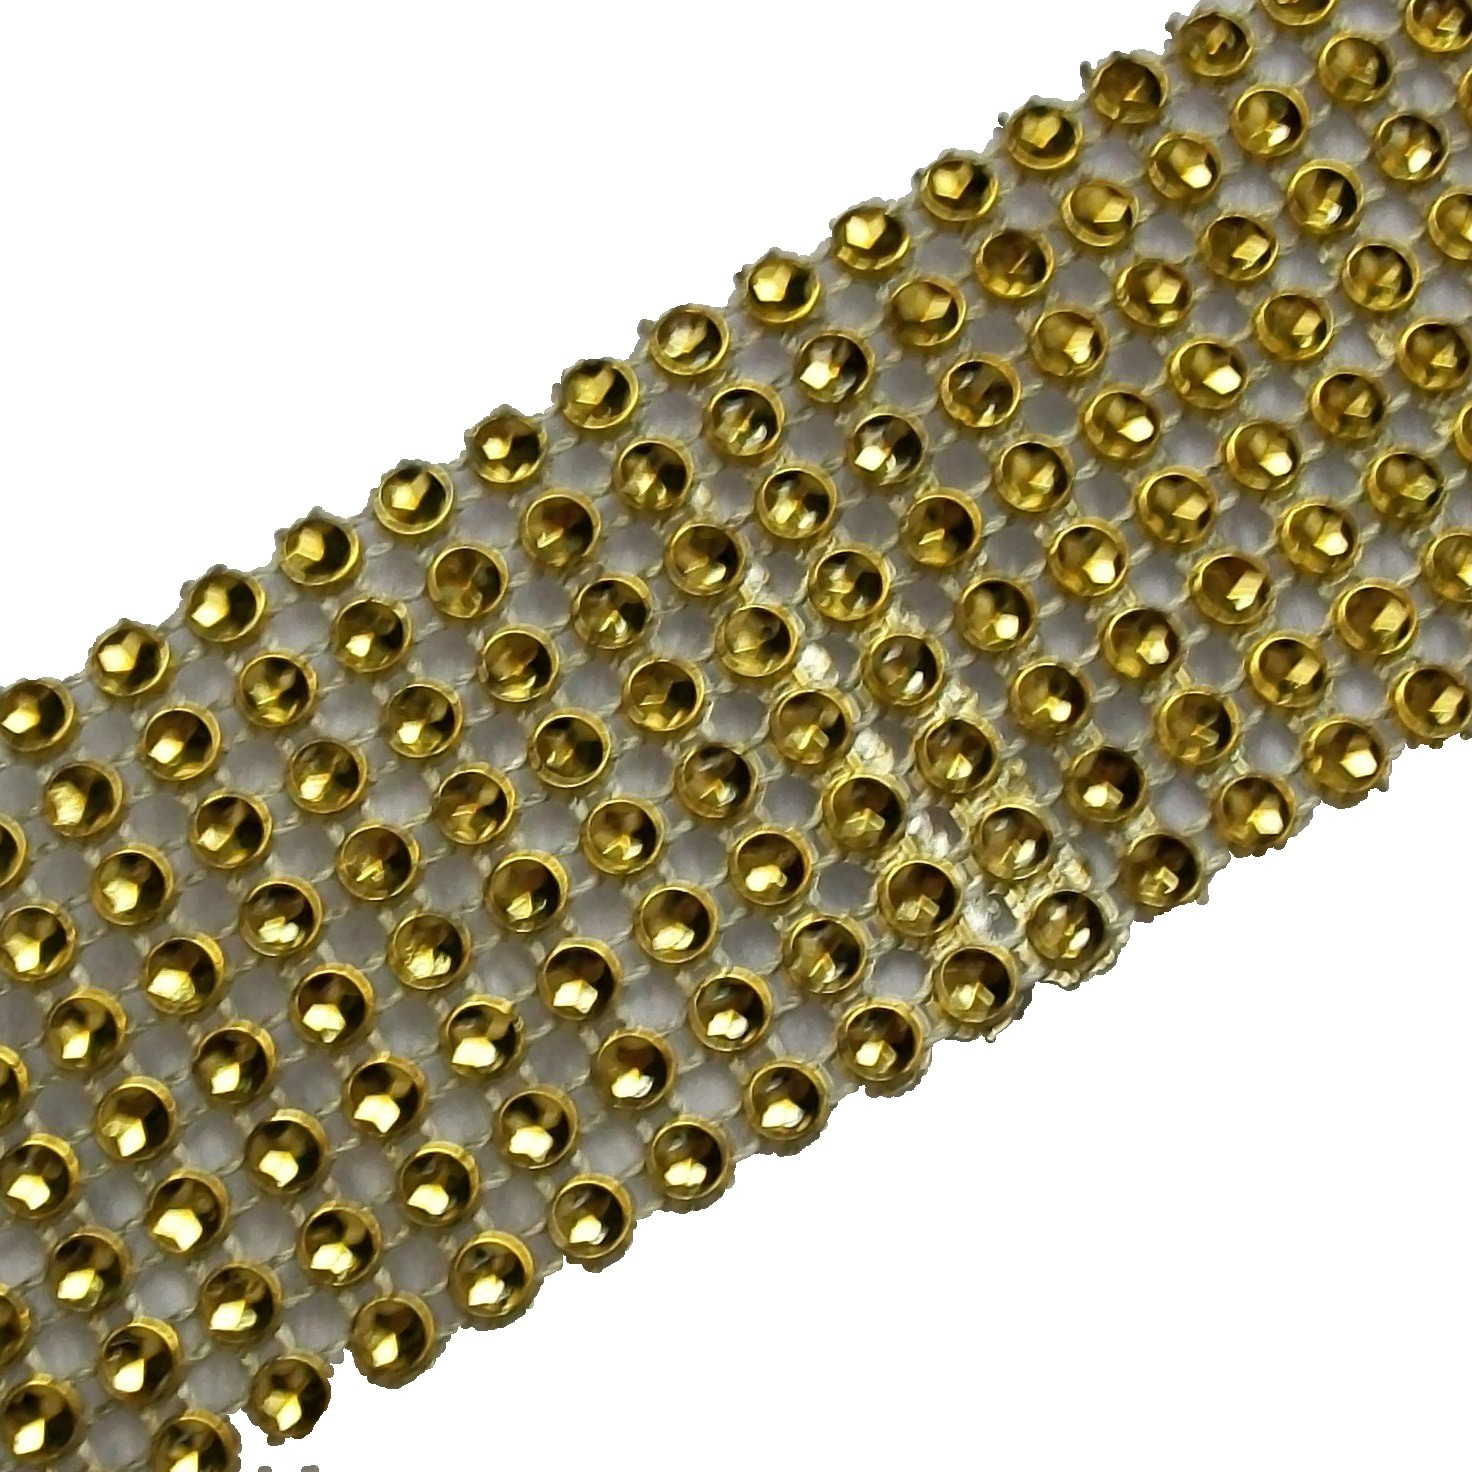 8 Row Diamante Trim 3.8cm Wide Gold 3 metre length